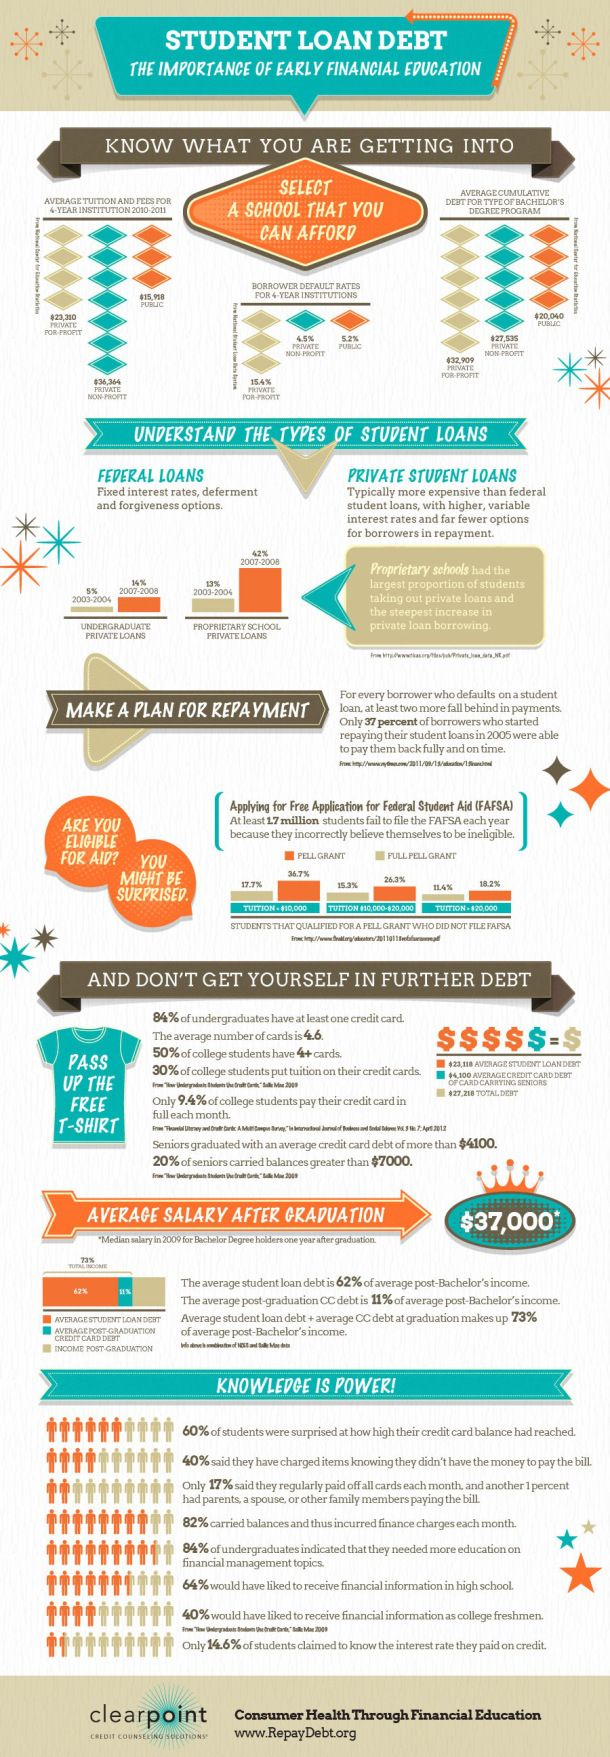 best images about infographics finance credit student loan debt is the next big financial crisis for america this infographic by clearpoint illustrates how the more you know the less you ll owe when